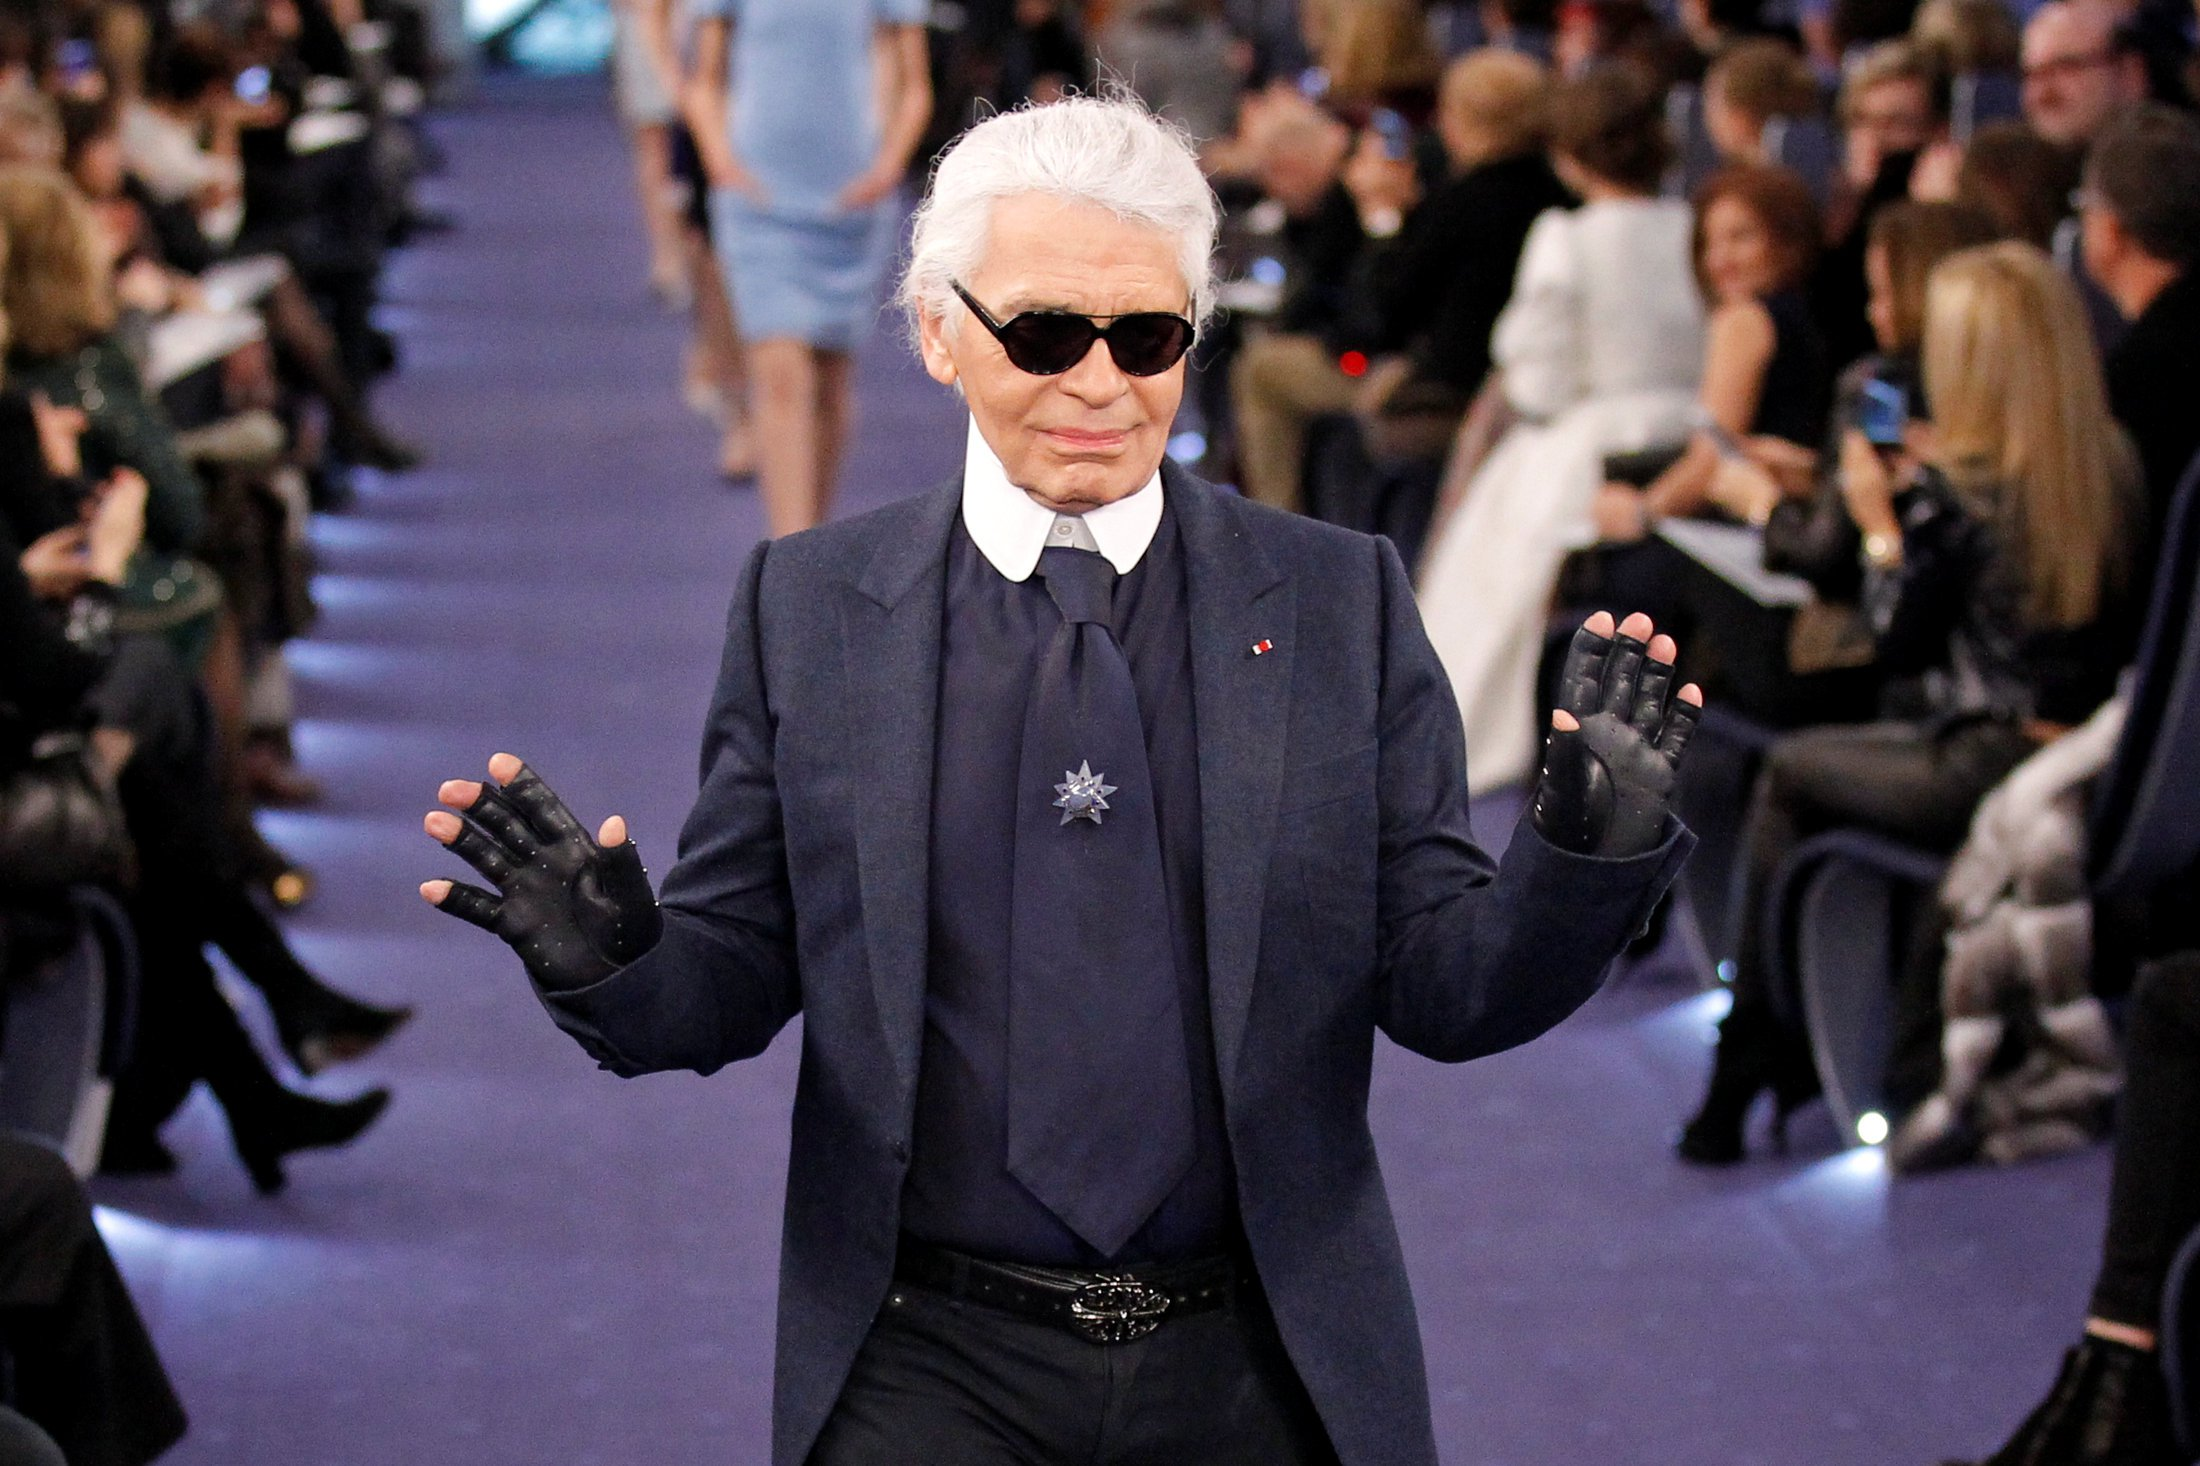 What is Karl Lagerfeld's net worth and how long was he the creative director at Chanel?